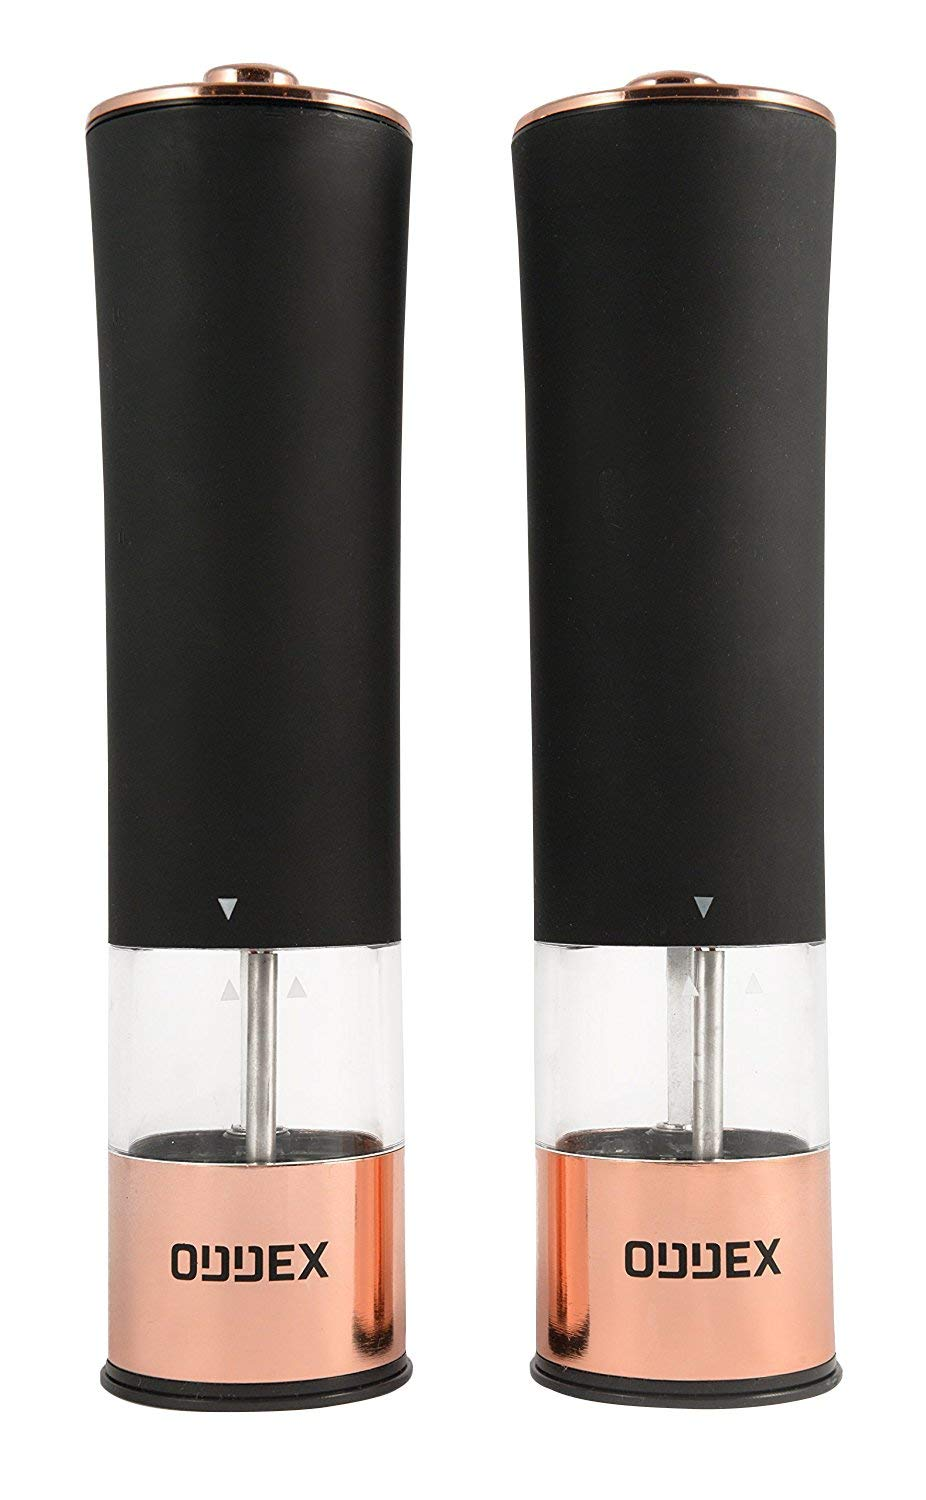 Electric Salt and Black Pepper Grinder Set by ODDEX | Automatic One Touch Operation, Adjustable Coarseness, Battery Operated, Refillable, Durable and Simple To Use Mill | (Bronze & Matte Black)